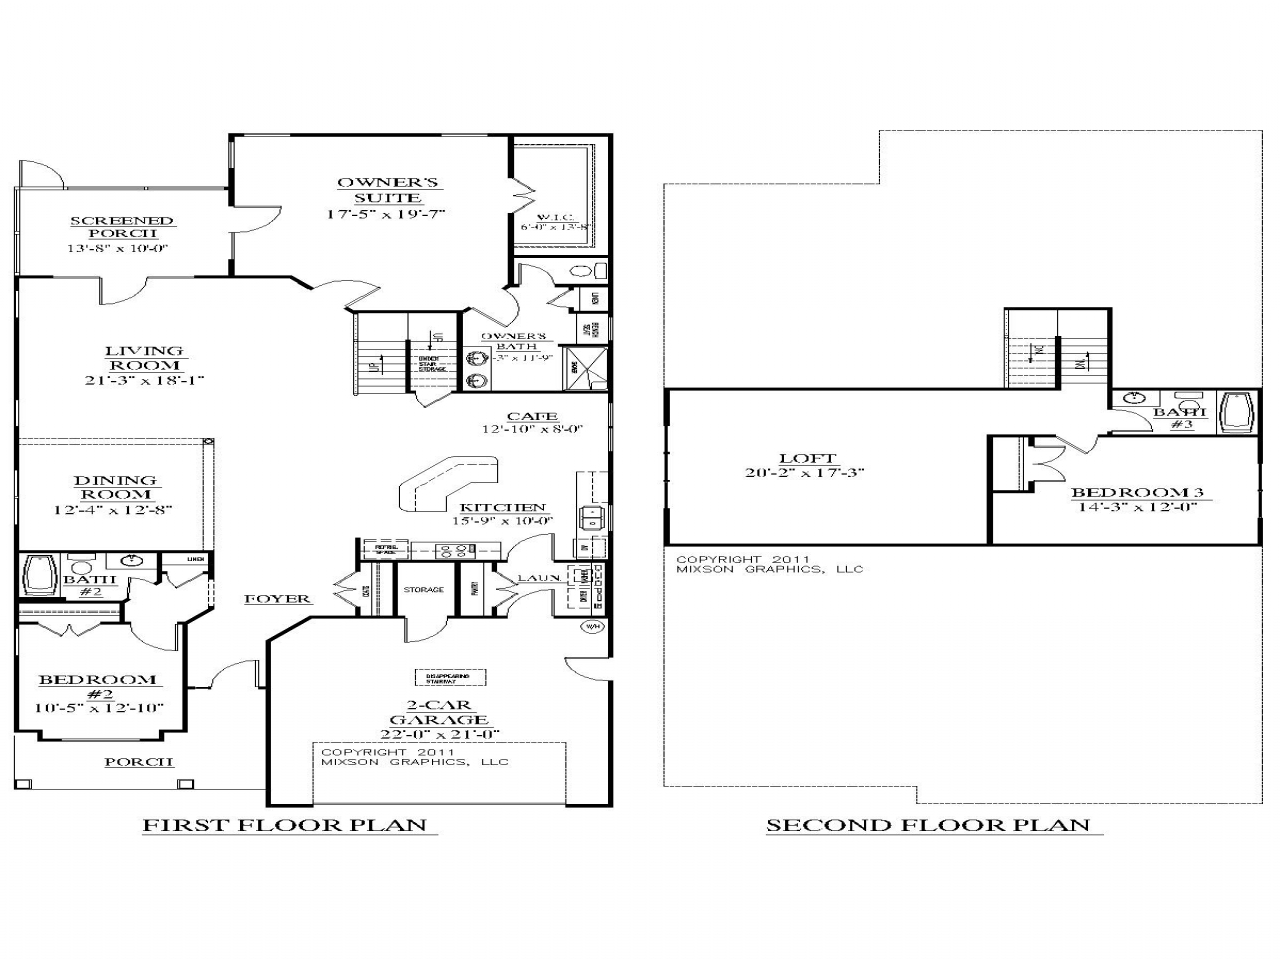 2 story house plans with bedrooms upstairs modern 2 story for Upstairs house plans